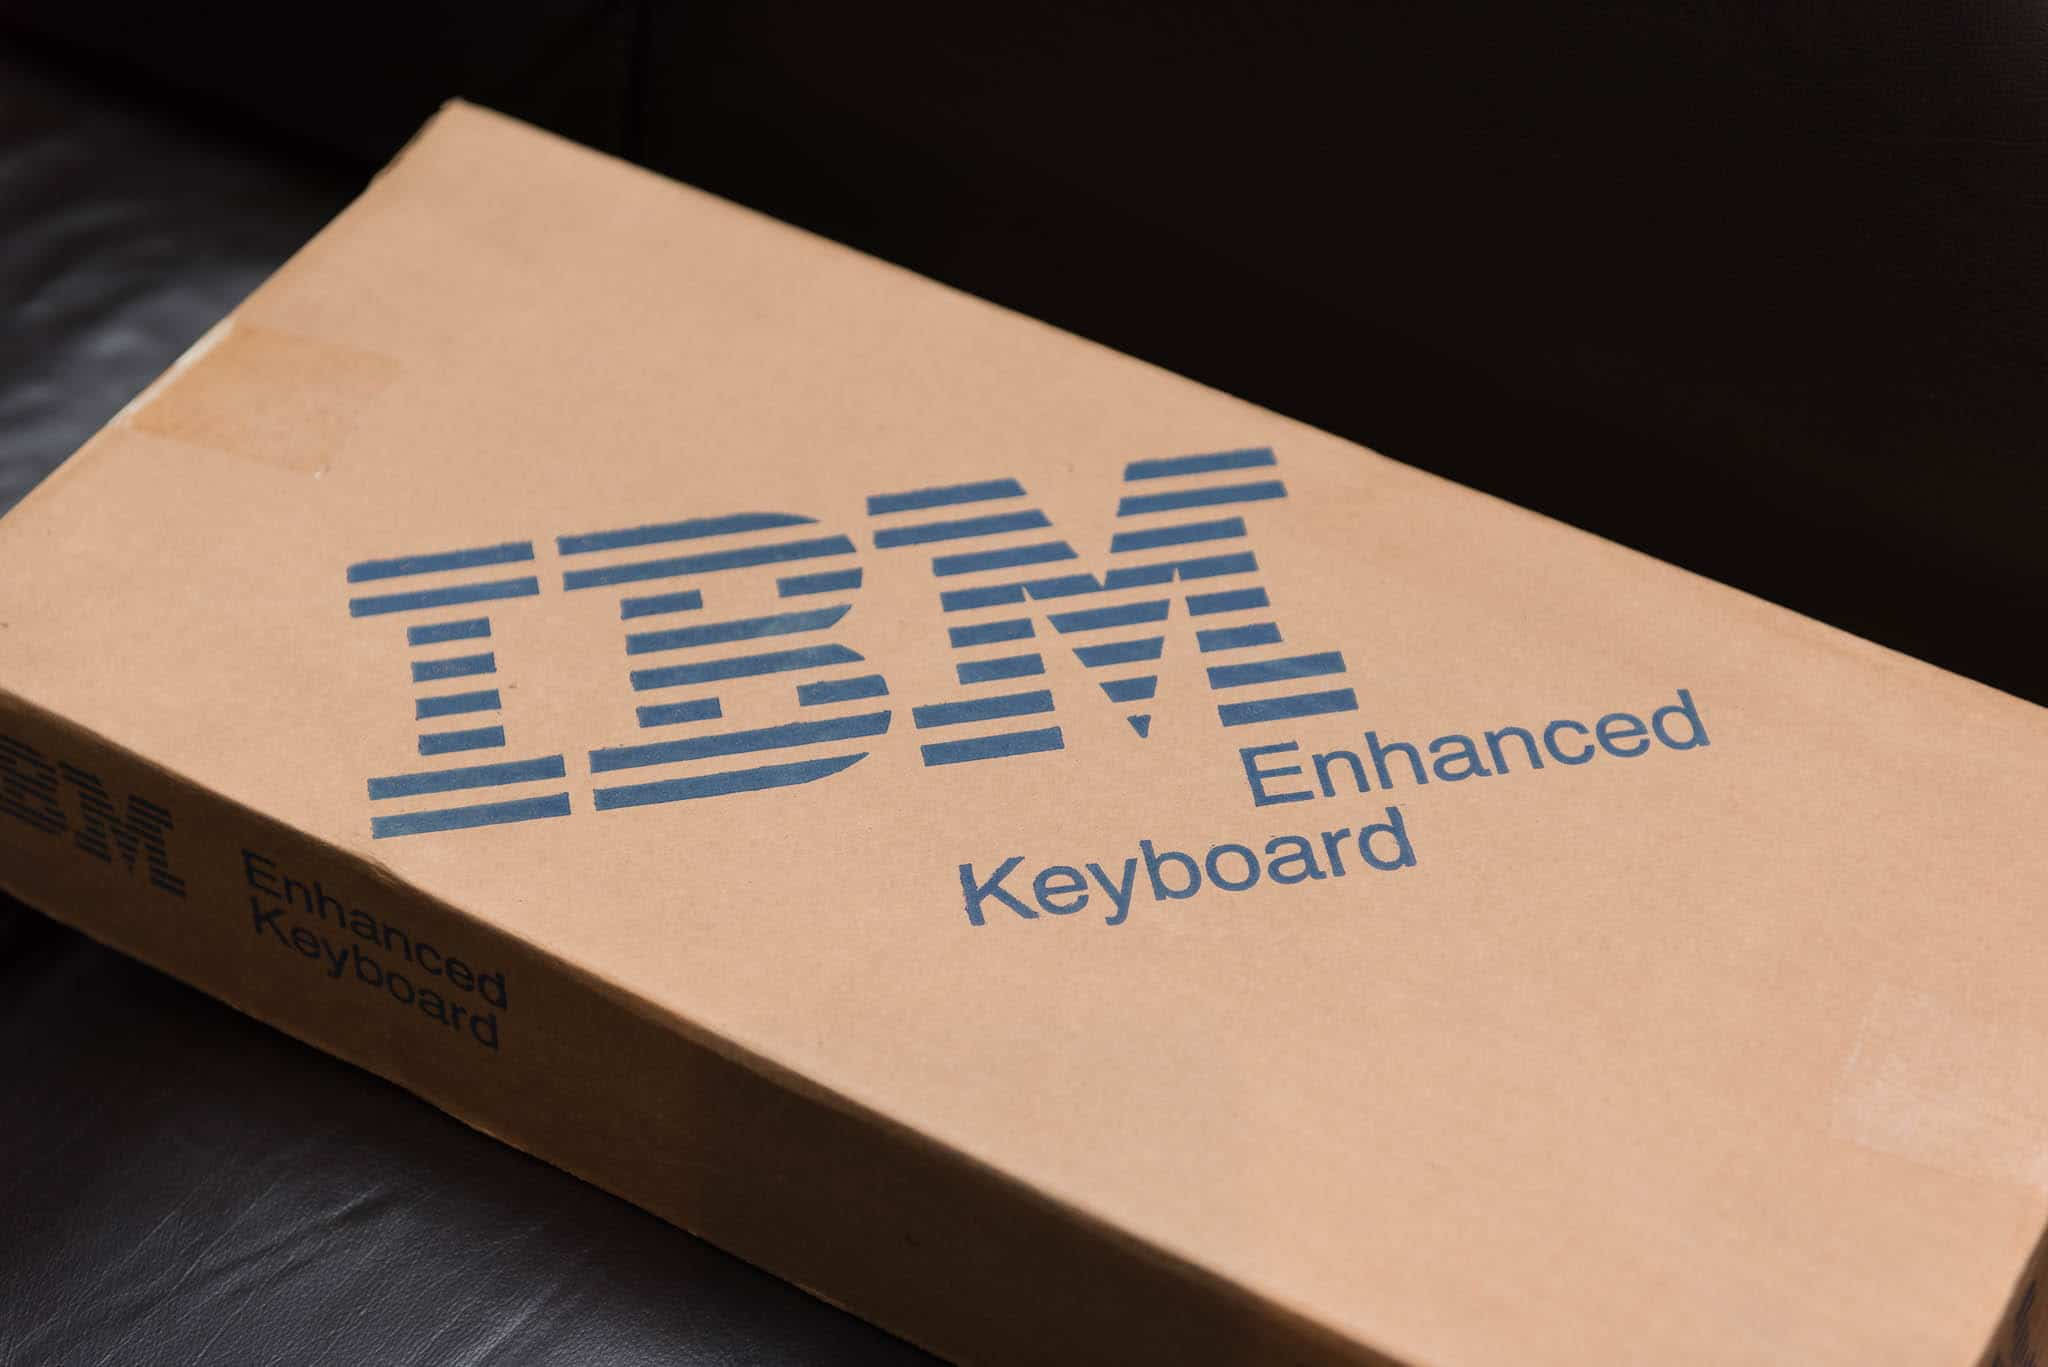 Unboxed: A brand spanking new IBM Model M Keyboard